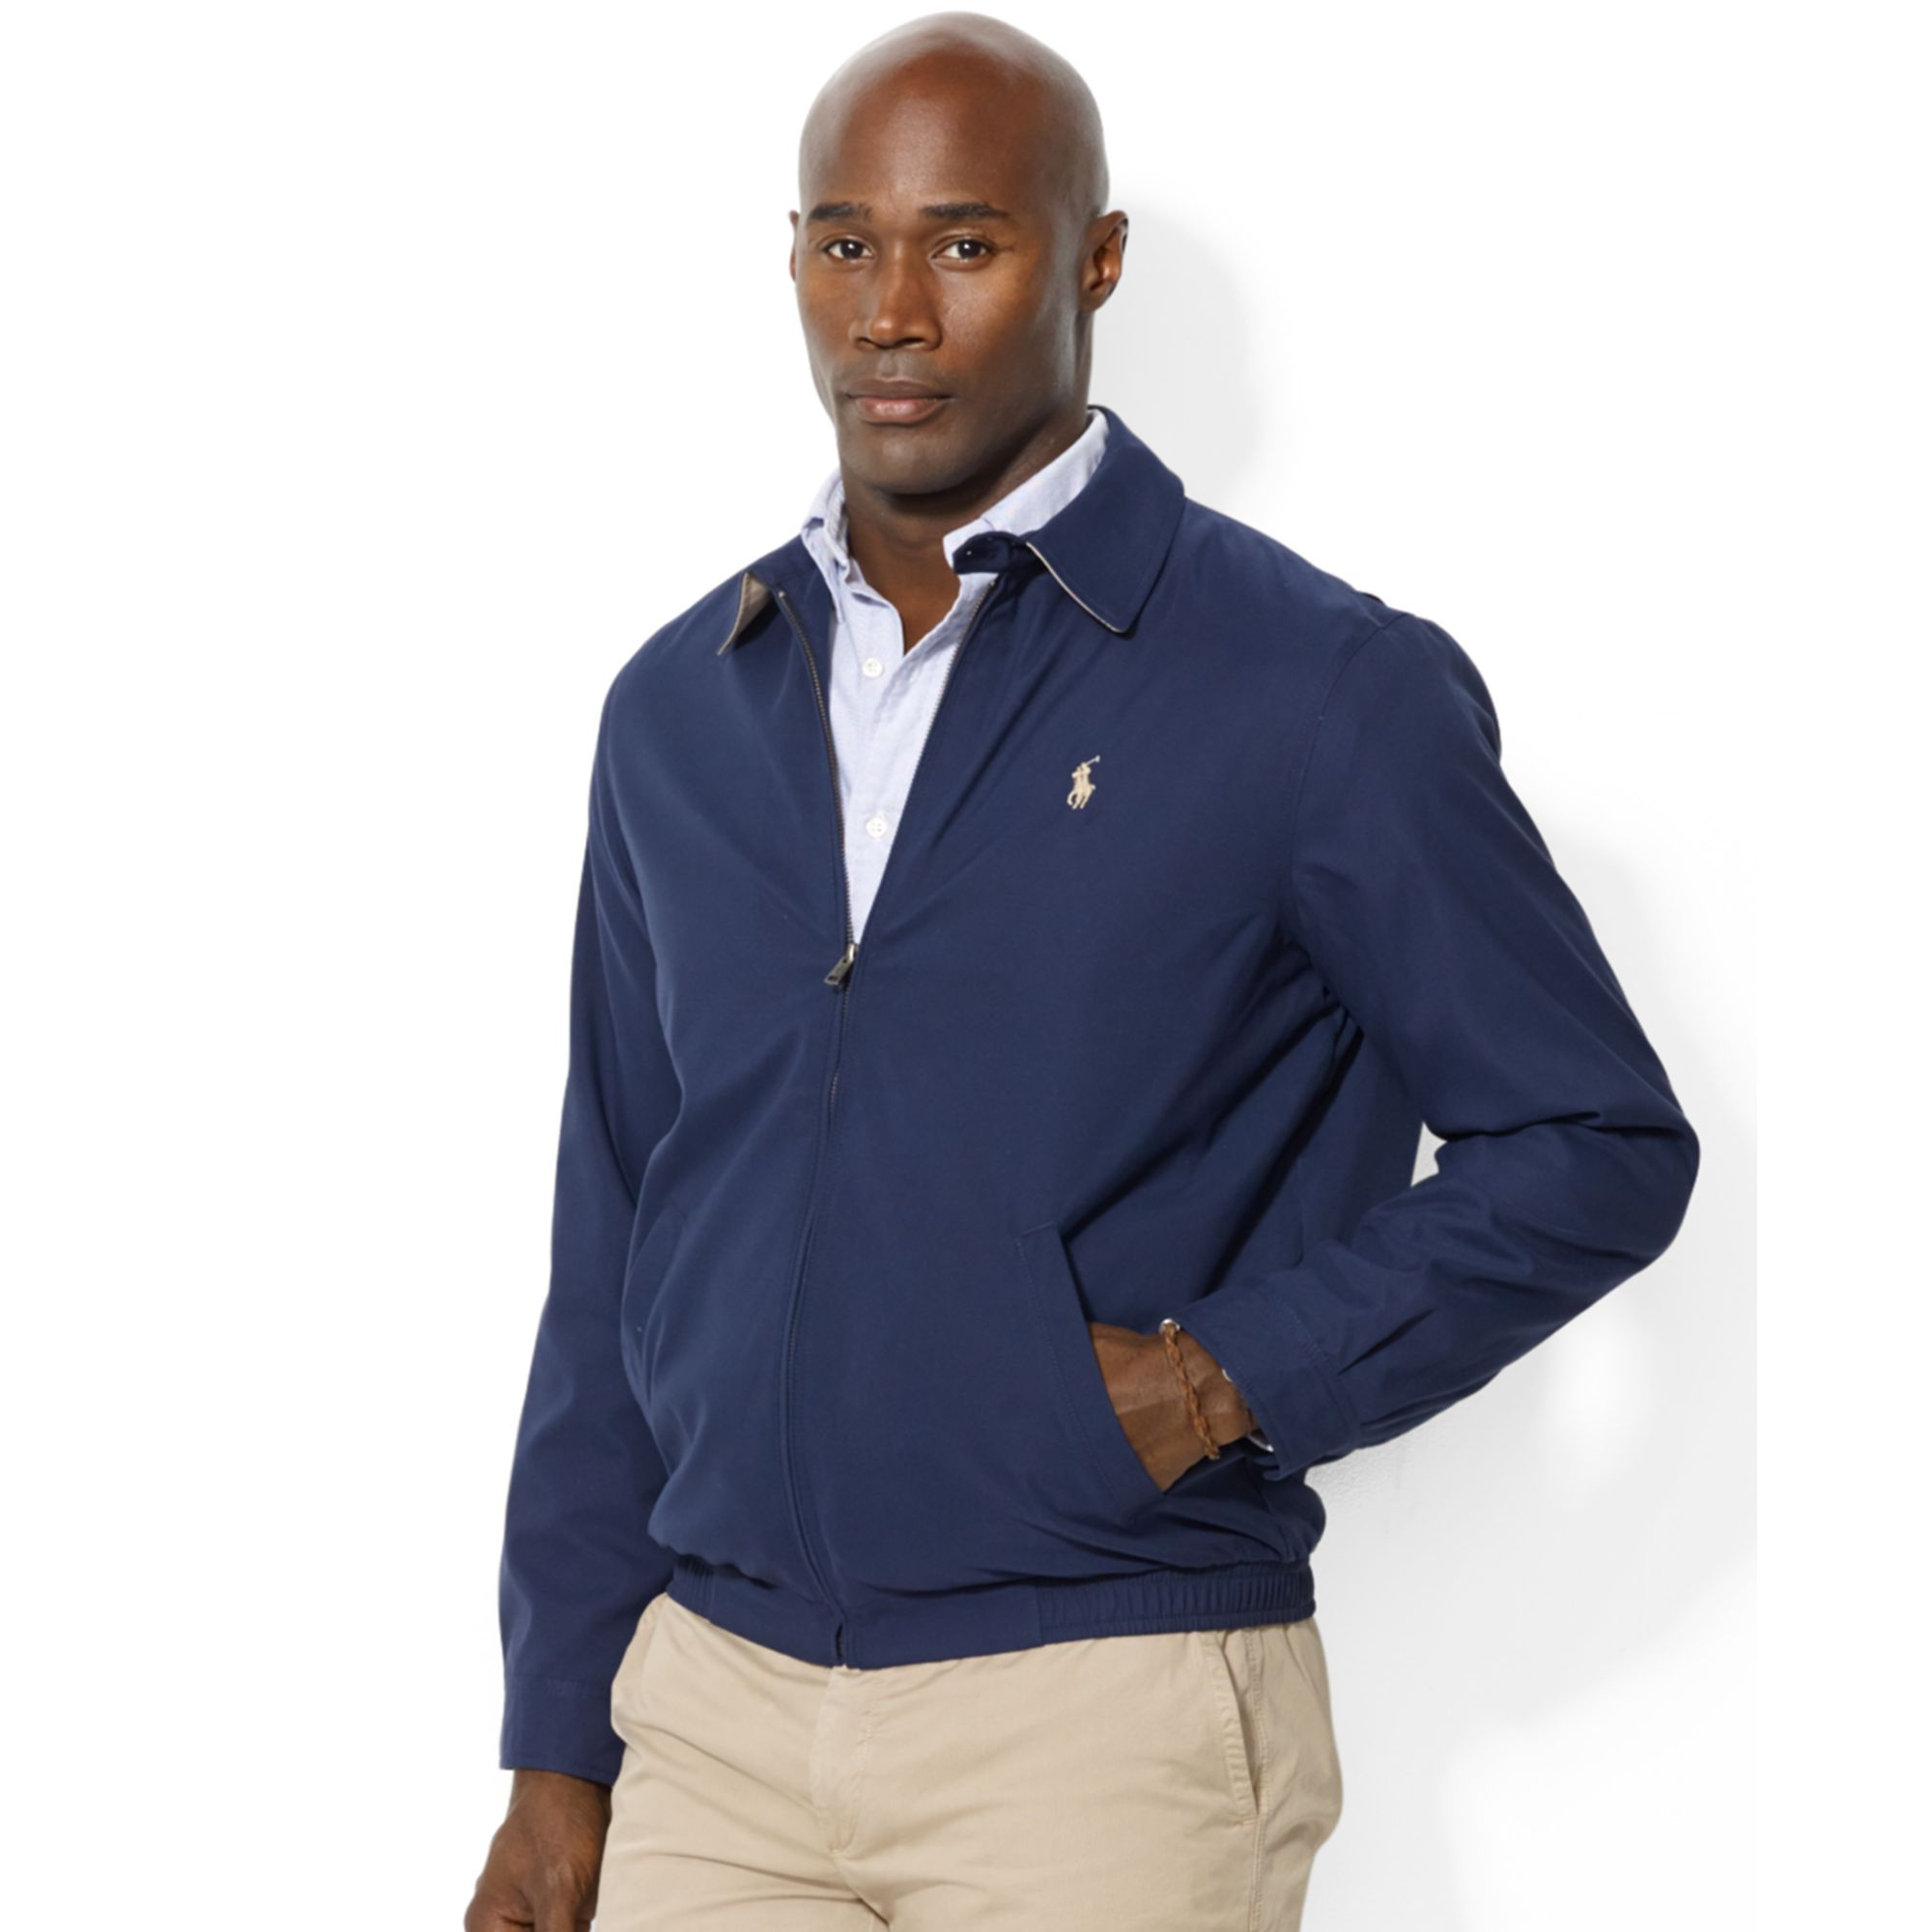 ralph lauren biswing windbreaker in blue for men lyst. Black Bedroom Furniture Sets. Home Design Ideas